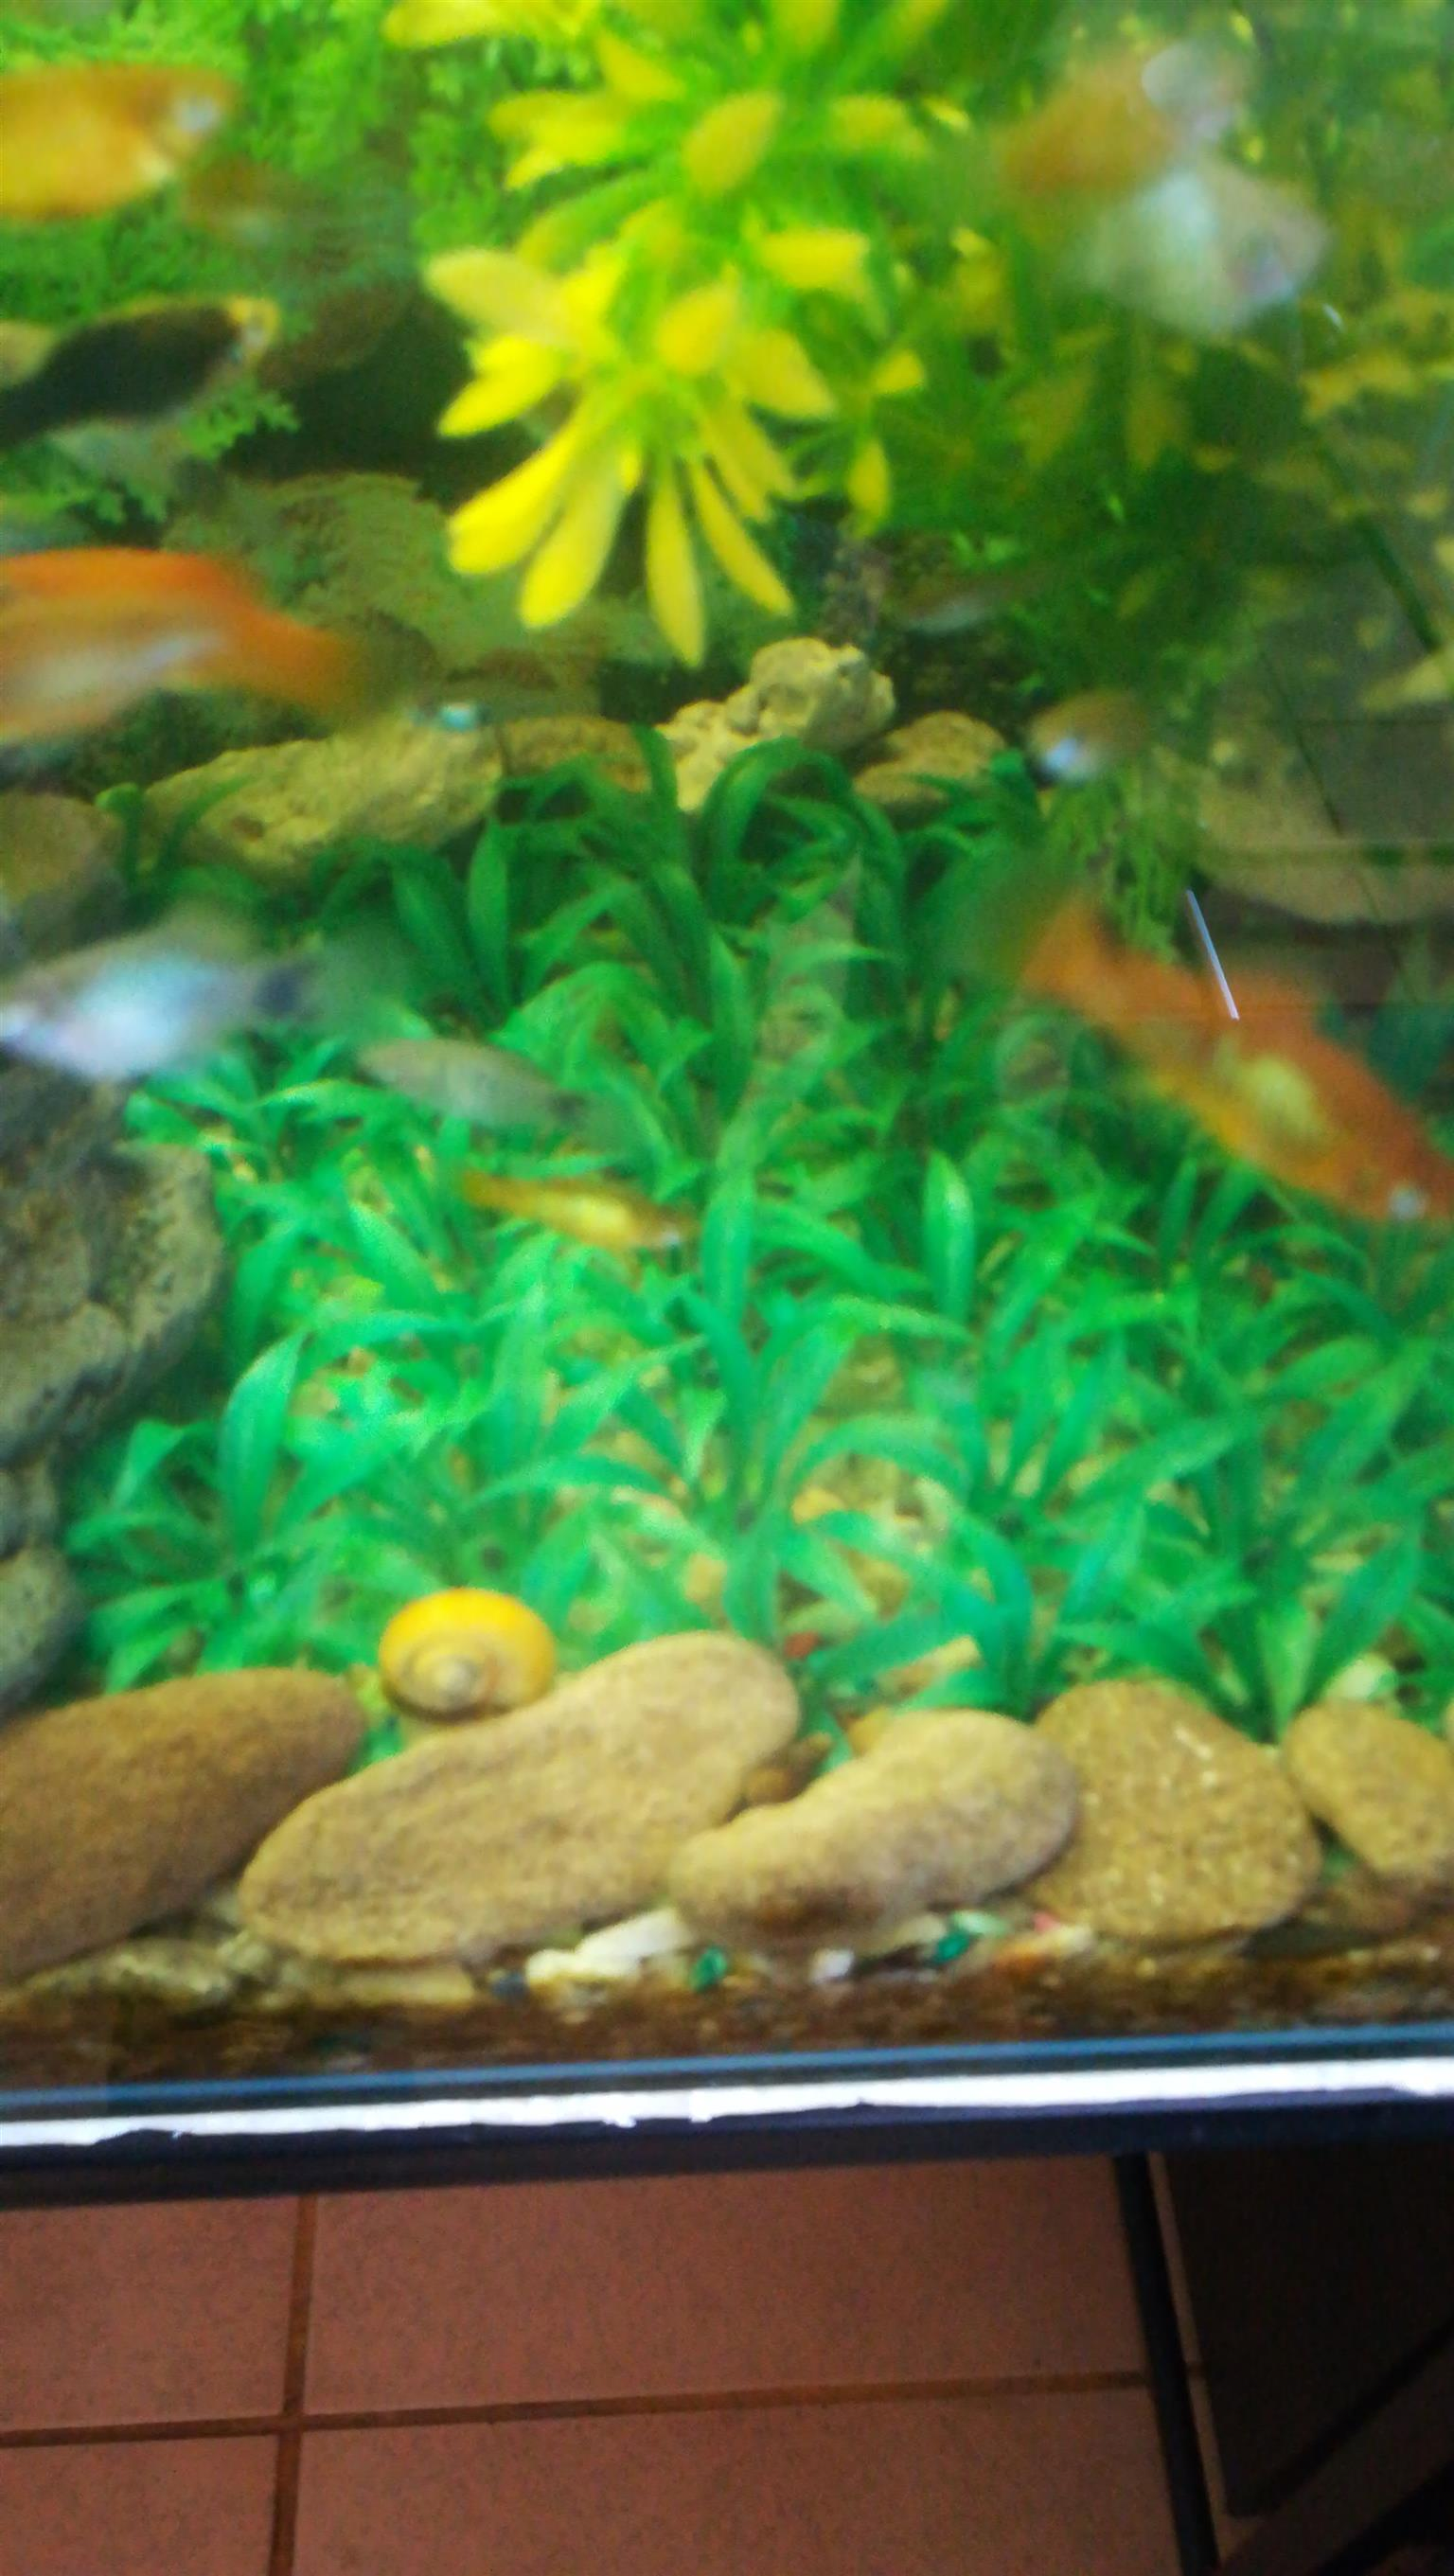 Fish tanks plastic grass mats